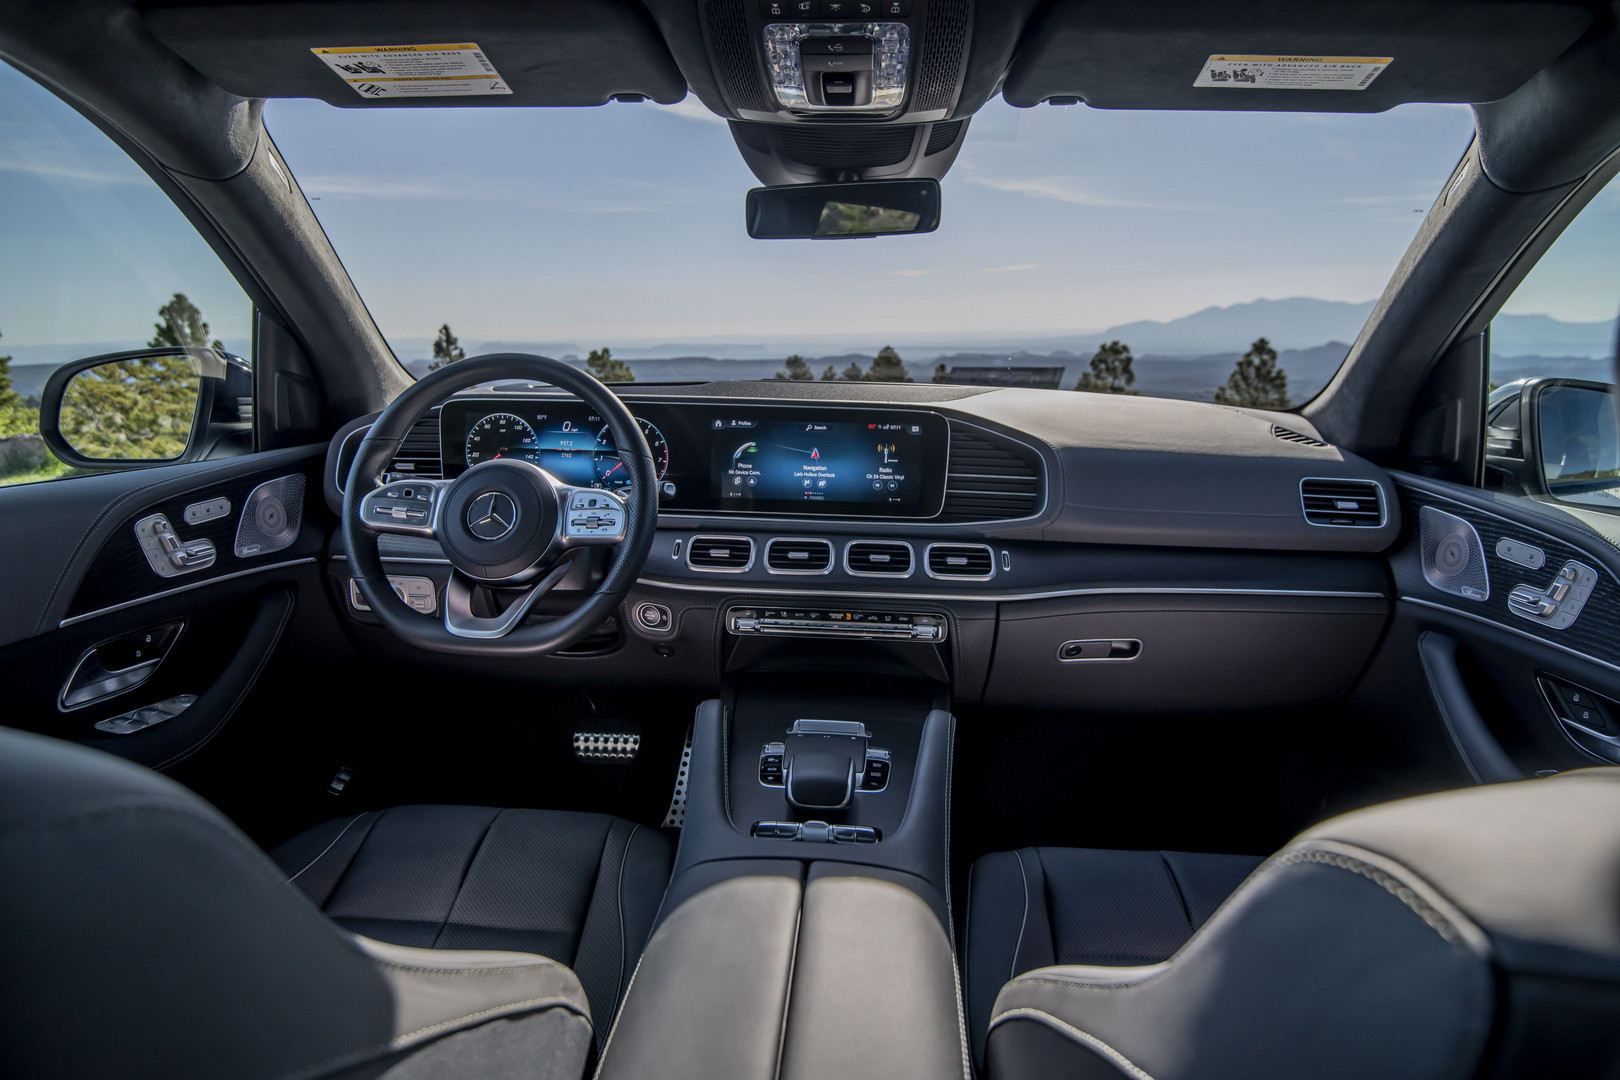 2020 Red Mercedes-Benz GLS 580 Interior